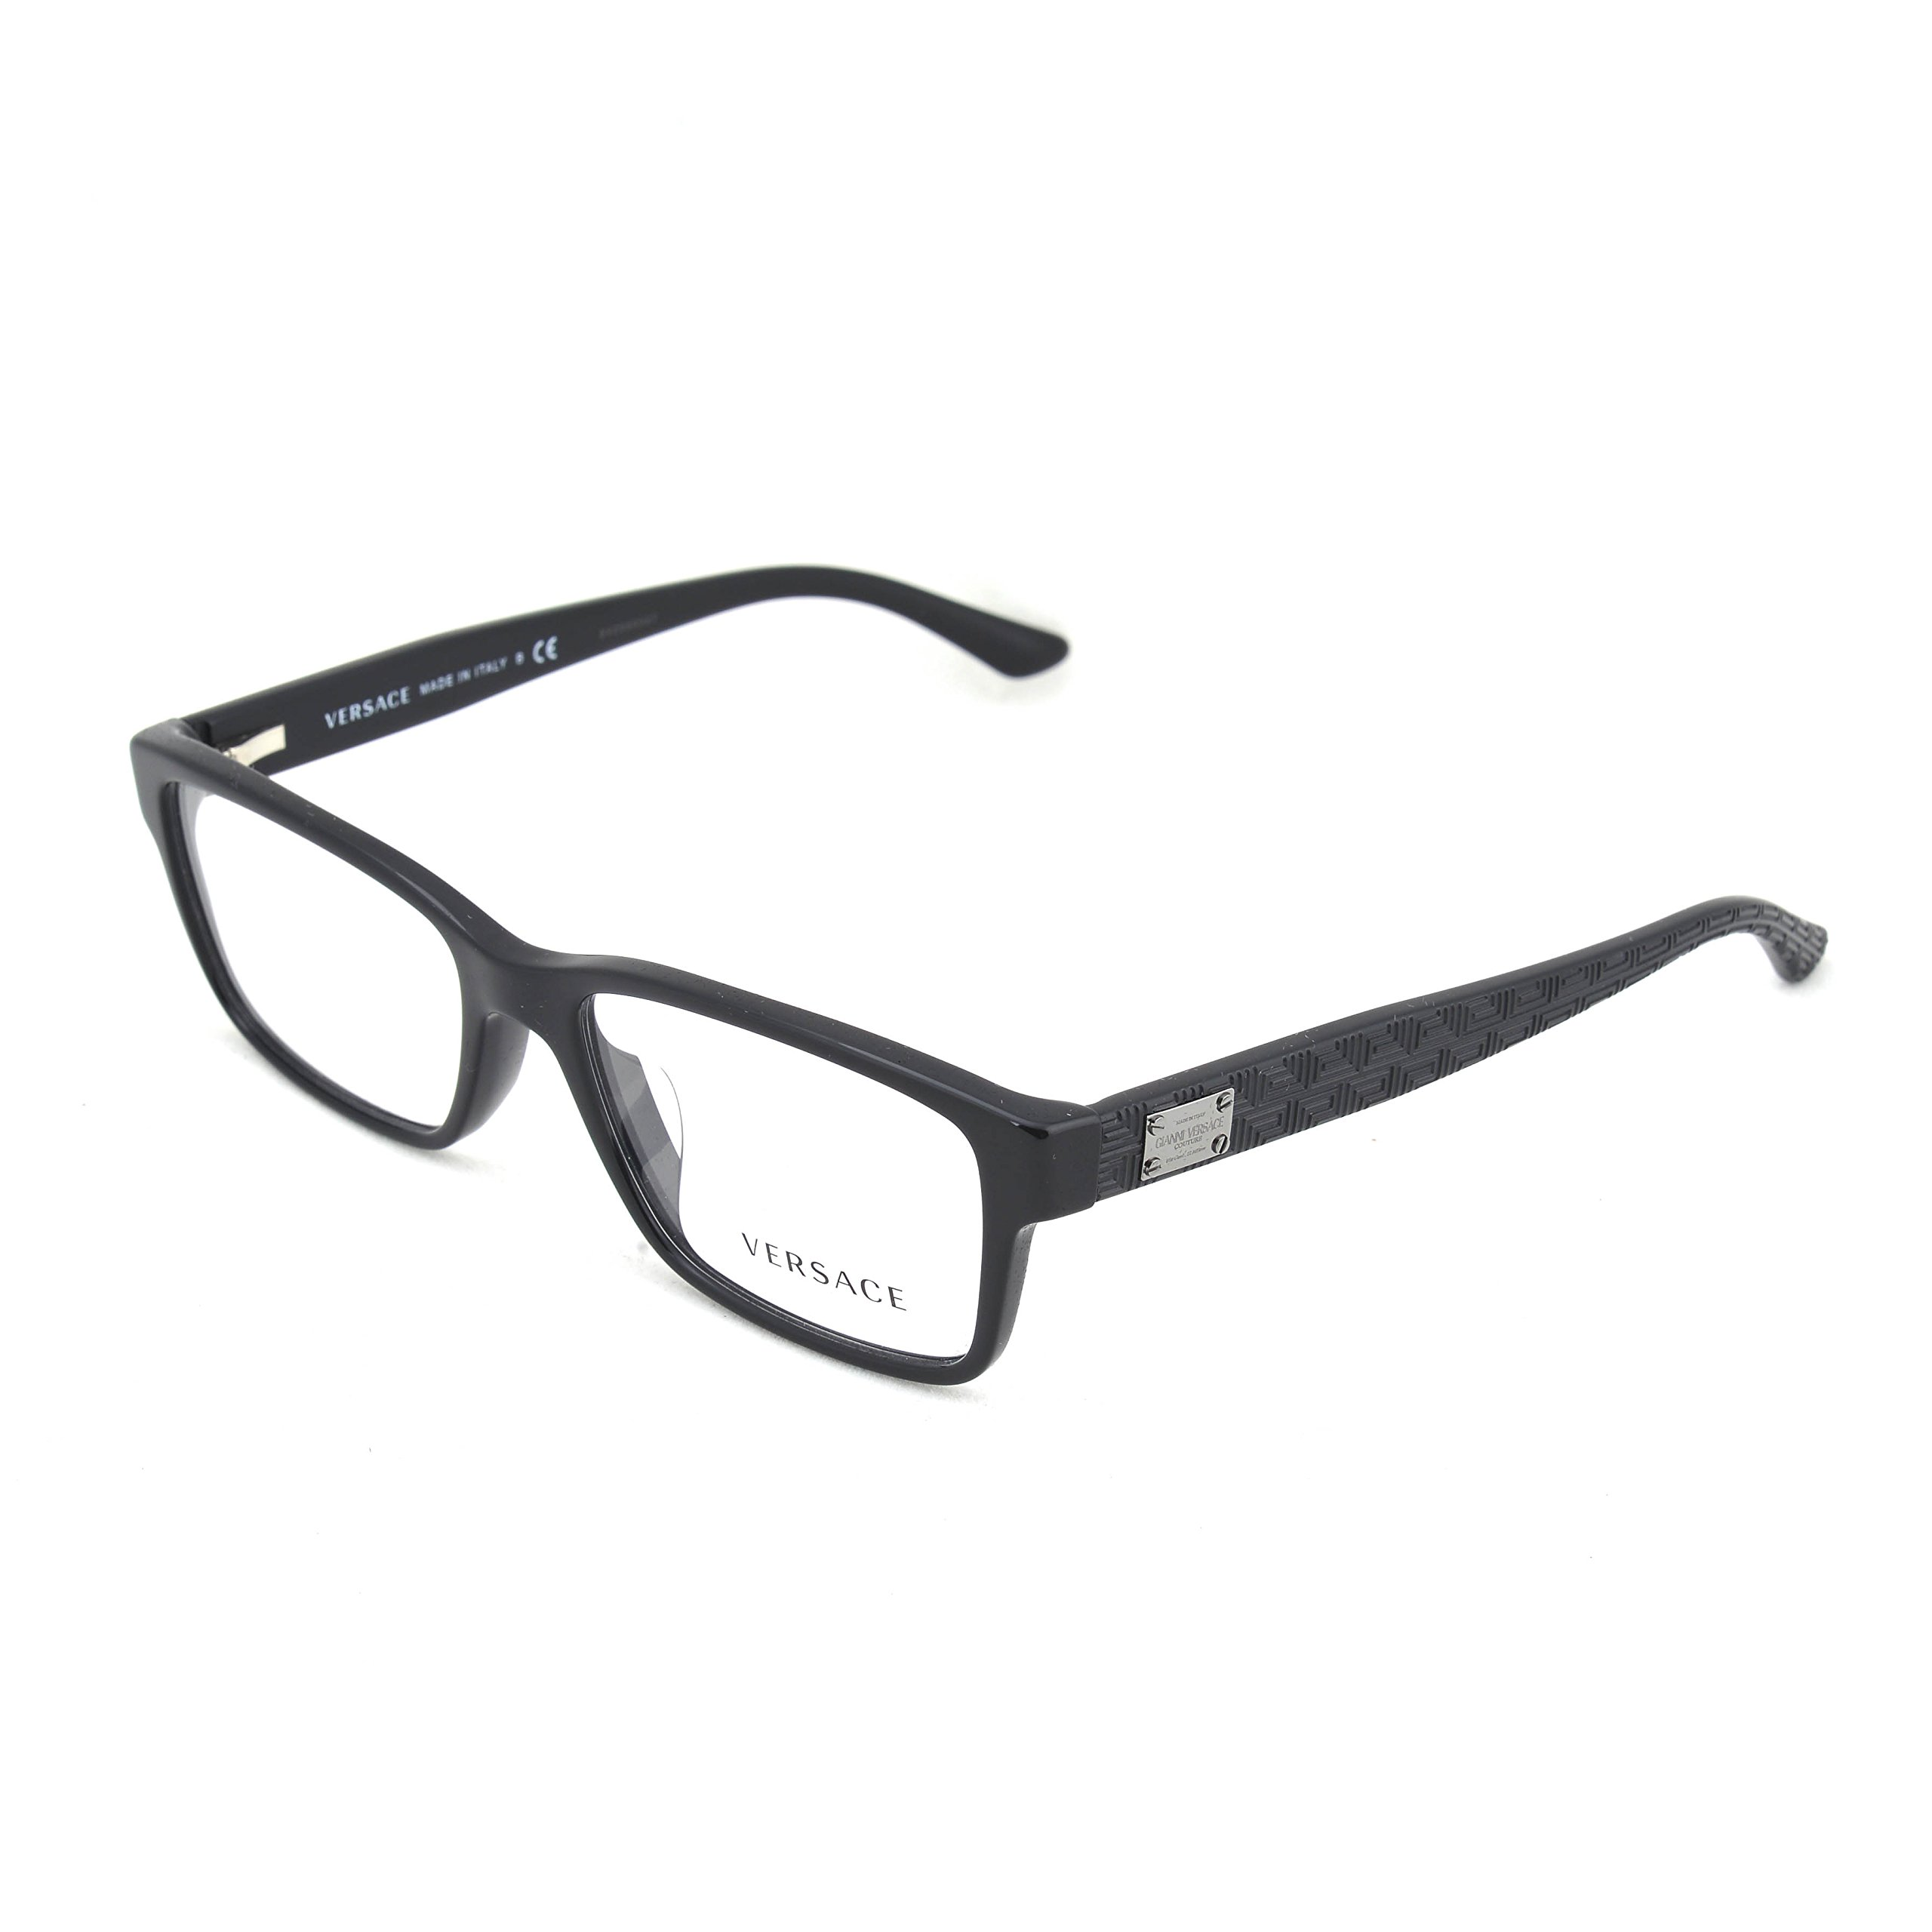 Versace Men's VE3198A Eyeglasses Black 55mm